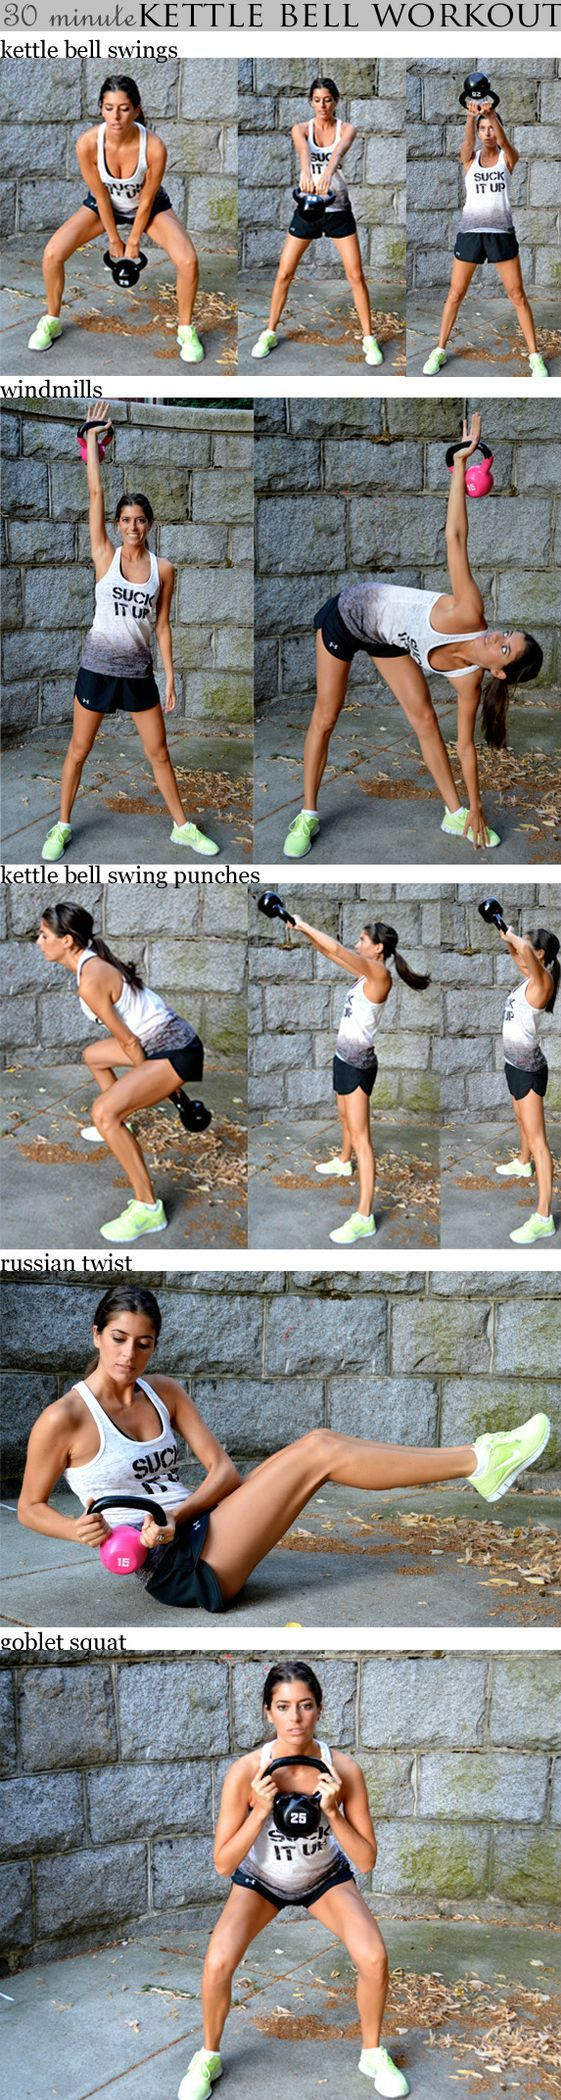 30 minutes Kettle Bell Workout #weightloss #loseweight #bodyweigthworkout #crossfit #fitness #workout https://www.youtube.com/watch?v=Q96gA6-kRZk